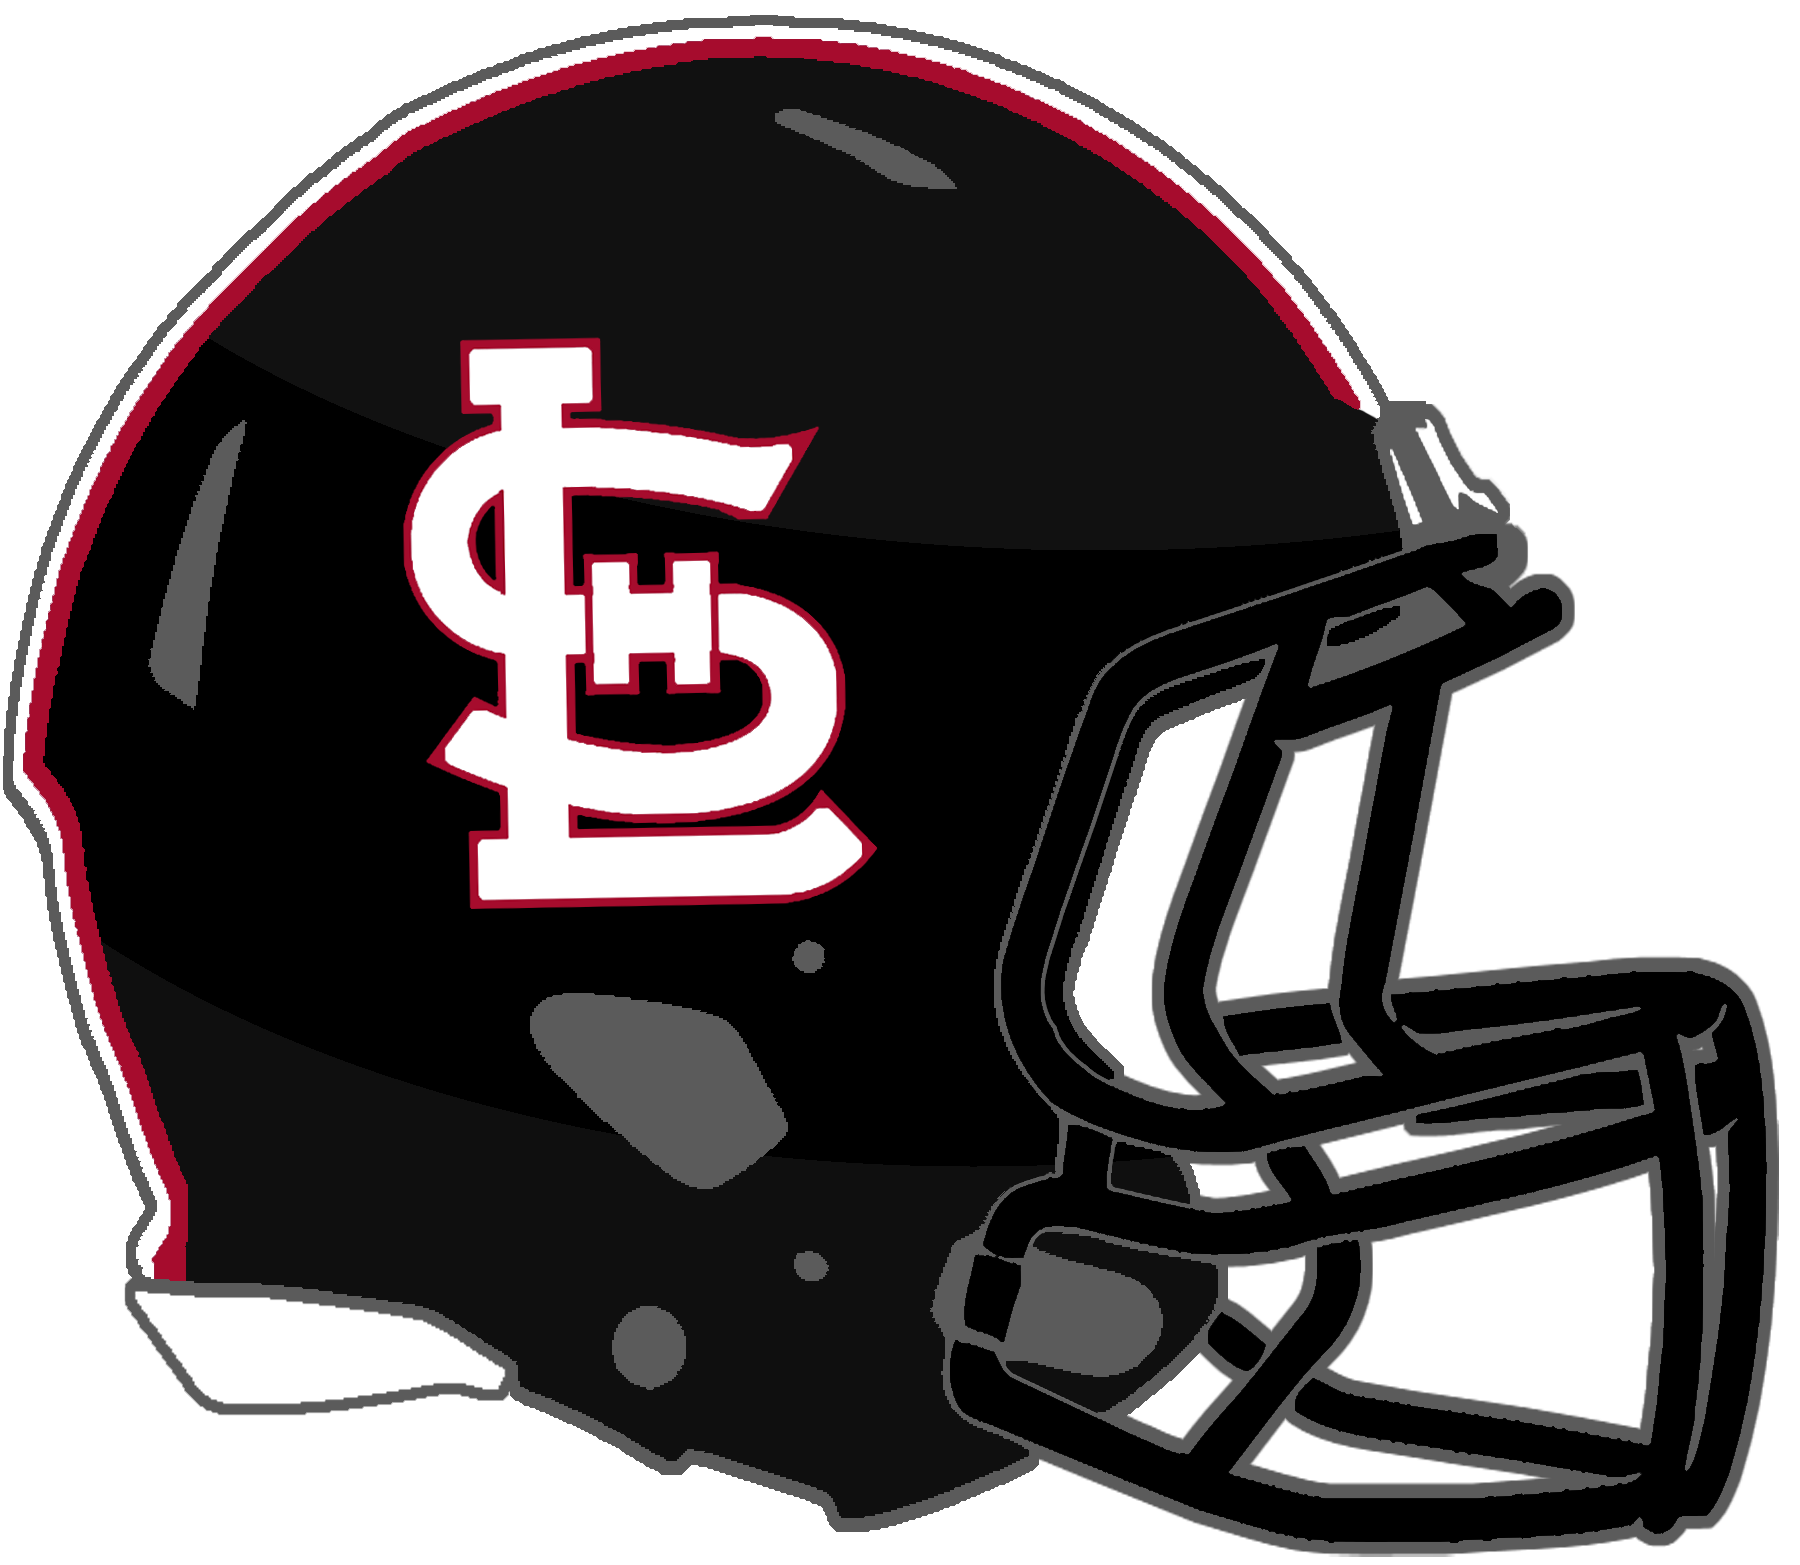 Panthers football helmet clipart png download Mississippi High School Football Helmets: 1A png download